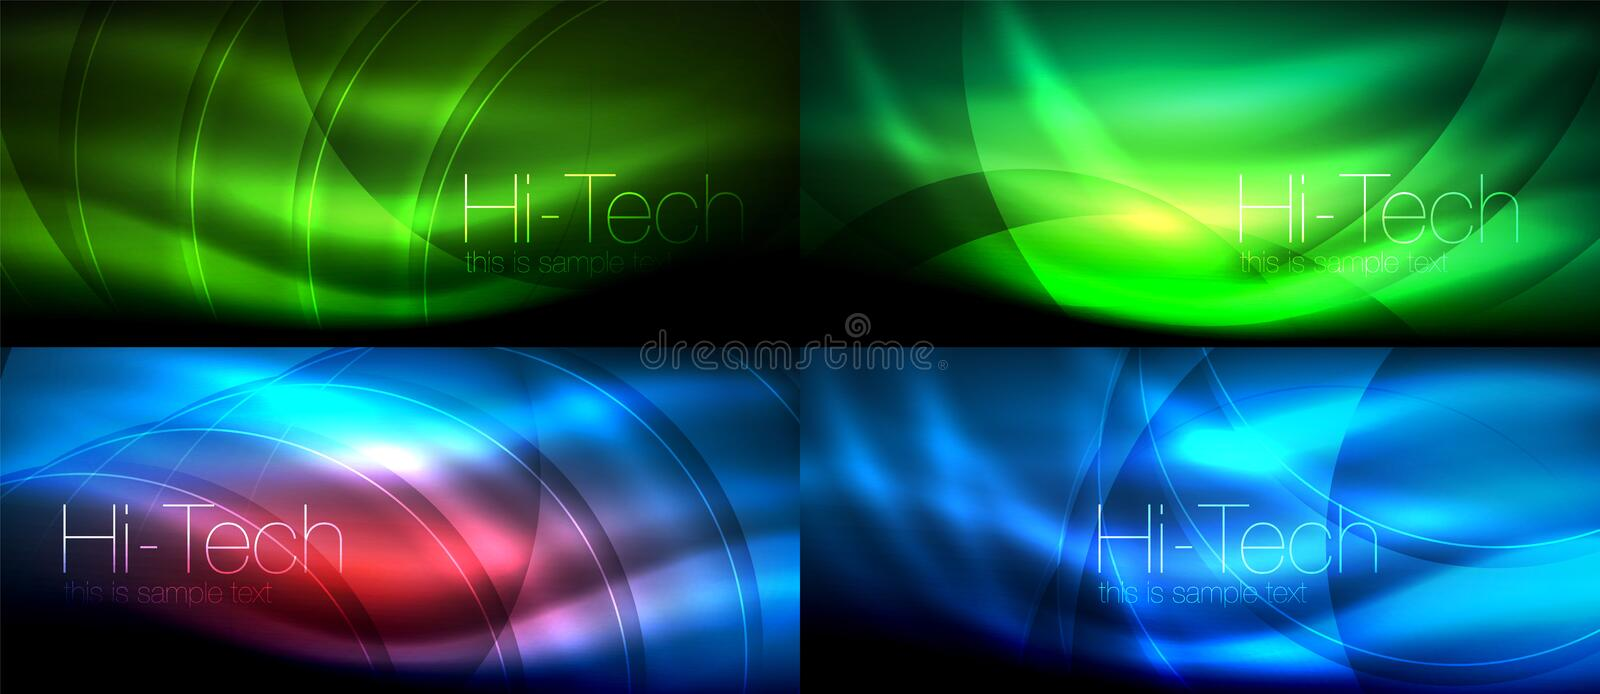 Neon glowing light abstract backgrounds collection, mega set of energy magic concept backgrounds. Vector illustration vector illustration